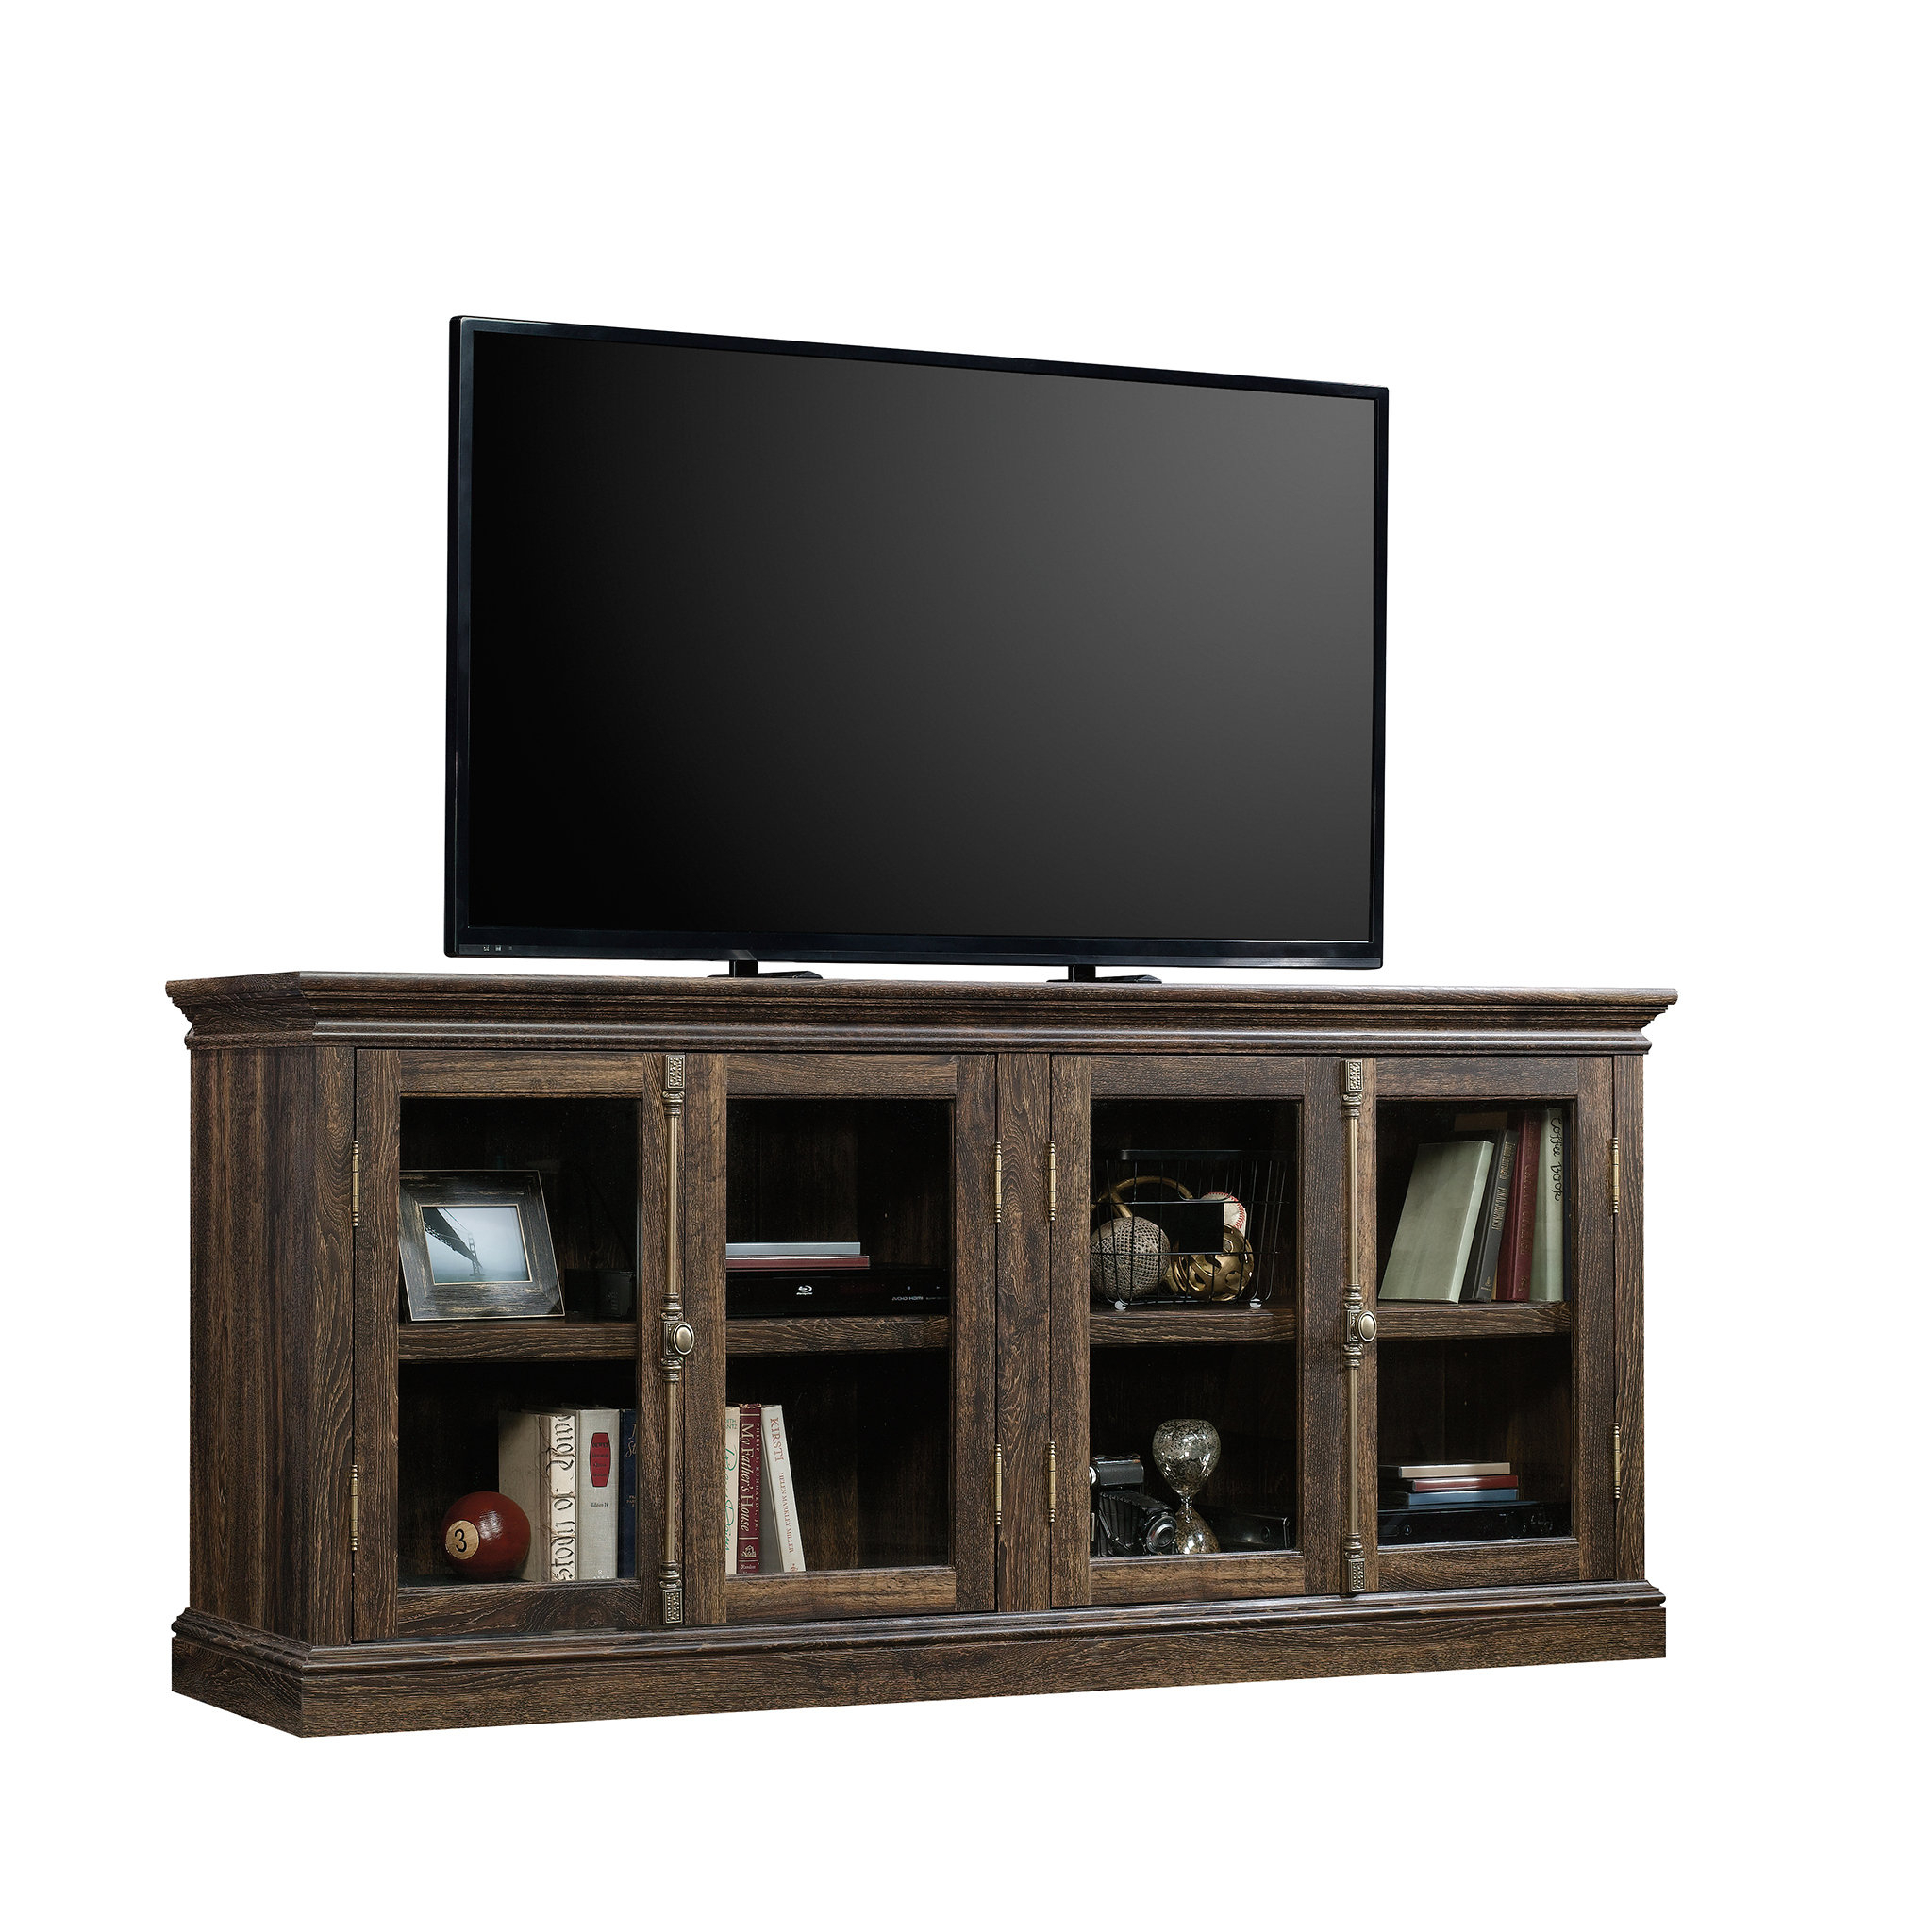 70 Inch Tv Stands | Joss & Main With Regard To Walton Grey 72 Inch Tv Stands (Photo 18 of 30)